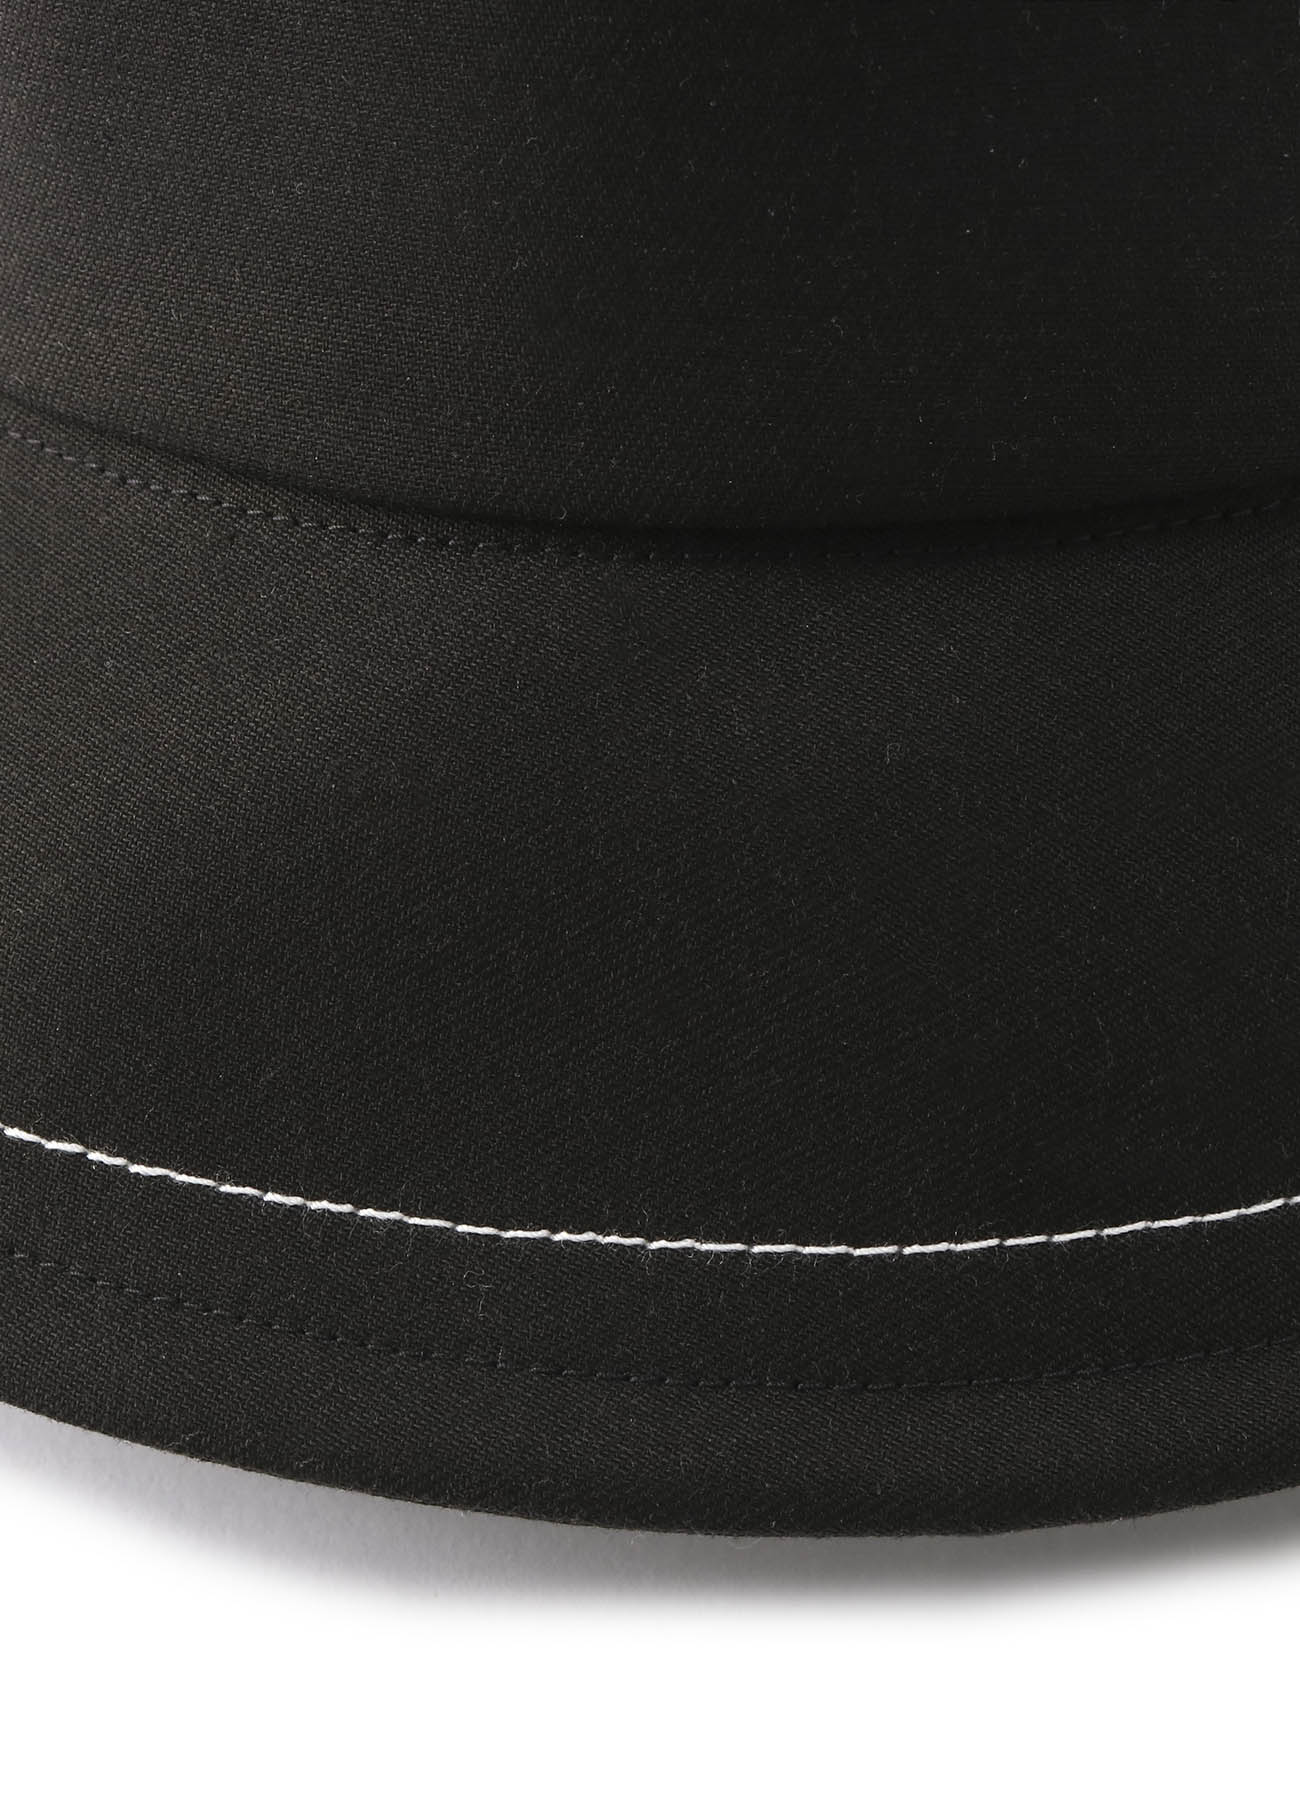 Cotton Twill ishica Hat A